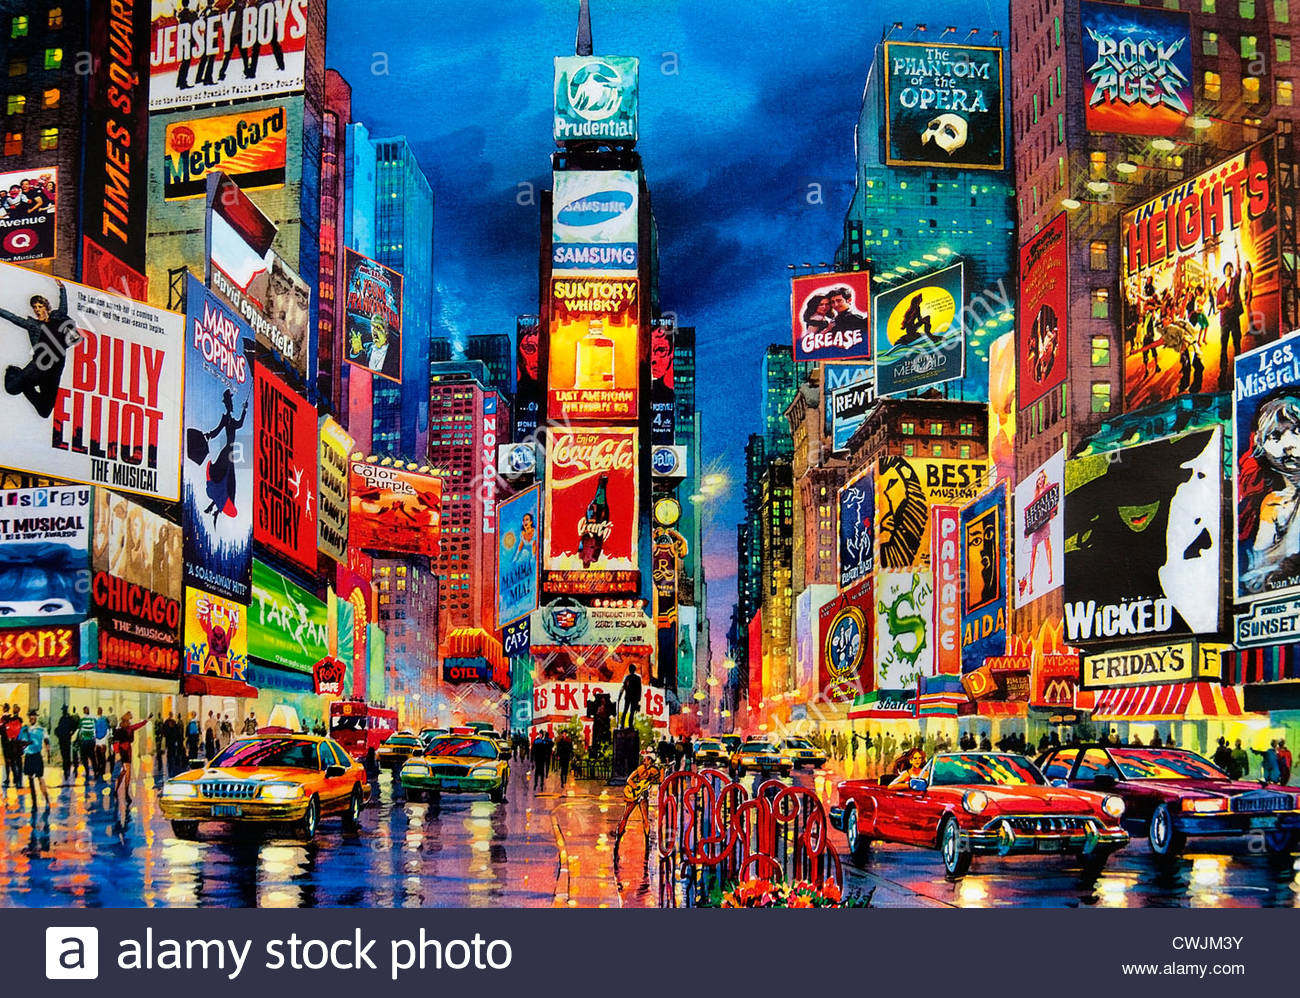 Broadway Shows in New York City | ShowTickets.com